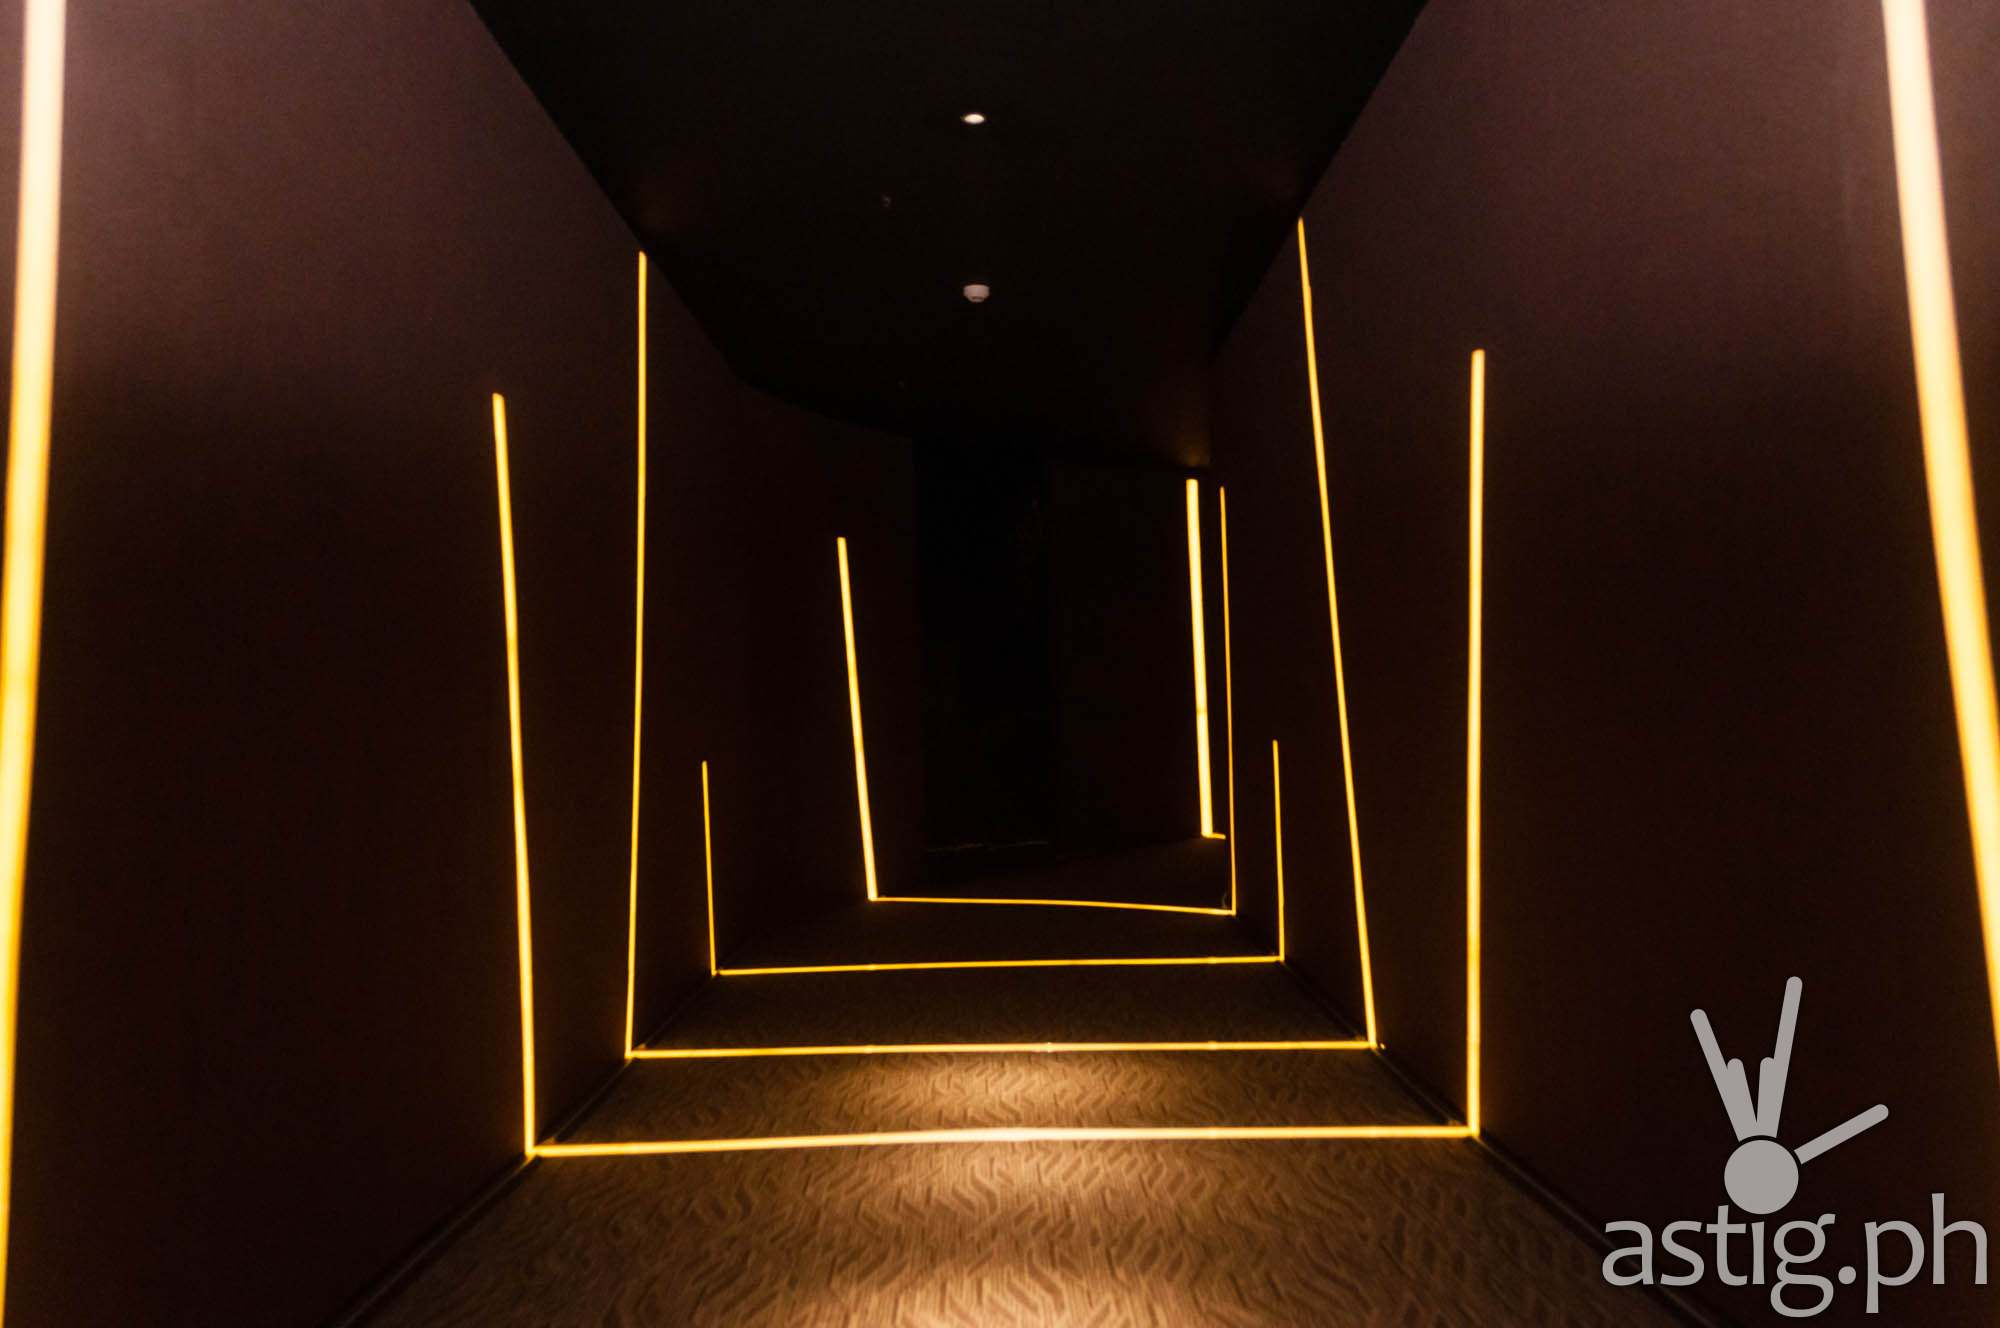 The hallways of the New Promenade cinemas are lined with led lights which not only guide moviegoers but also serves as a visual treat